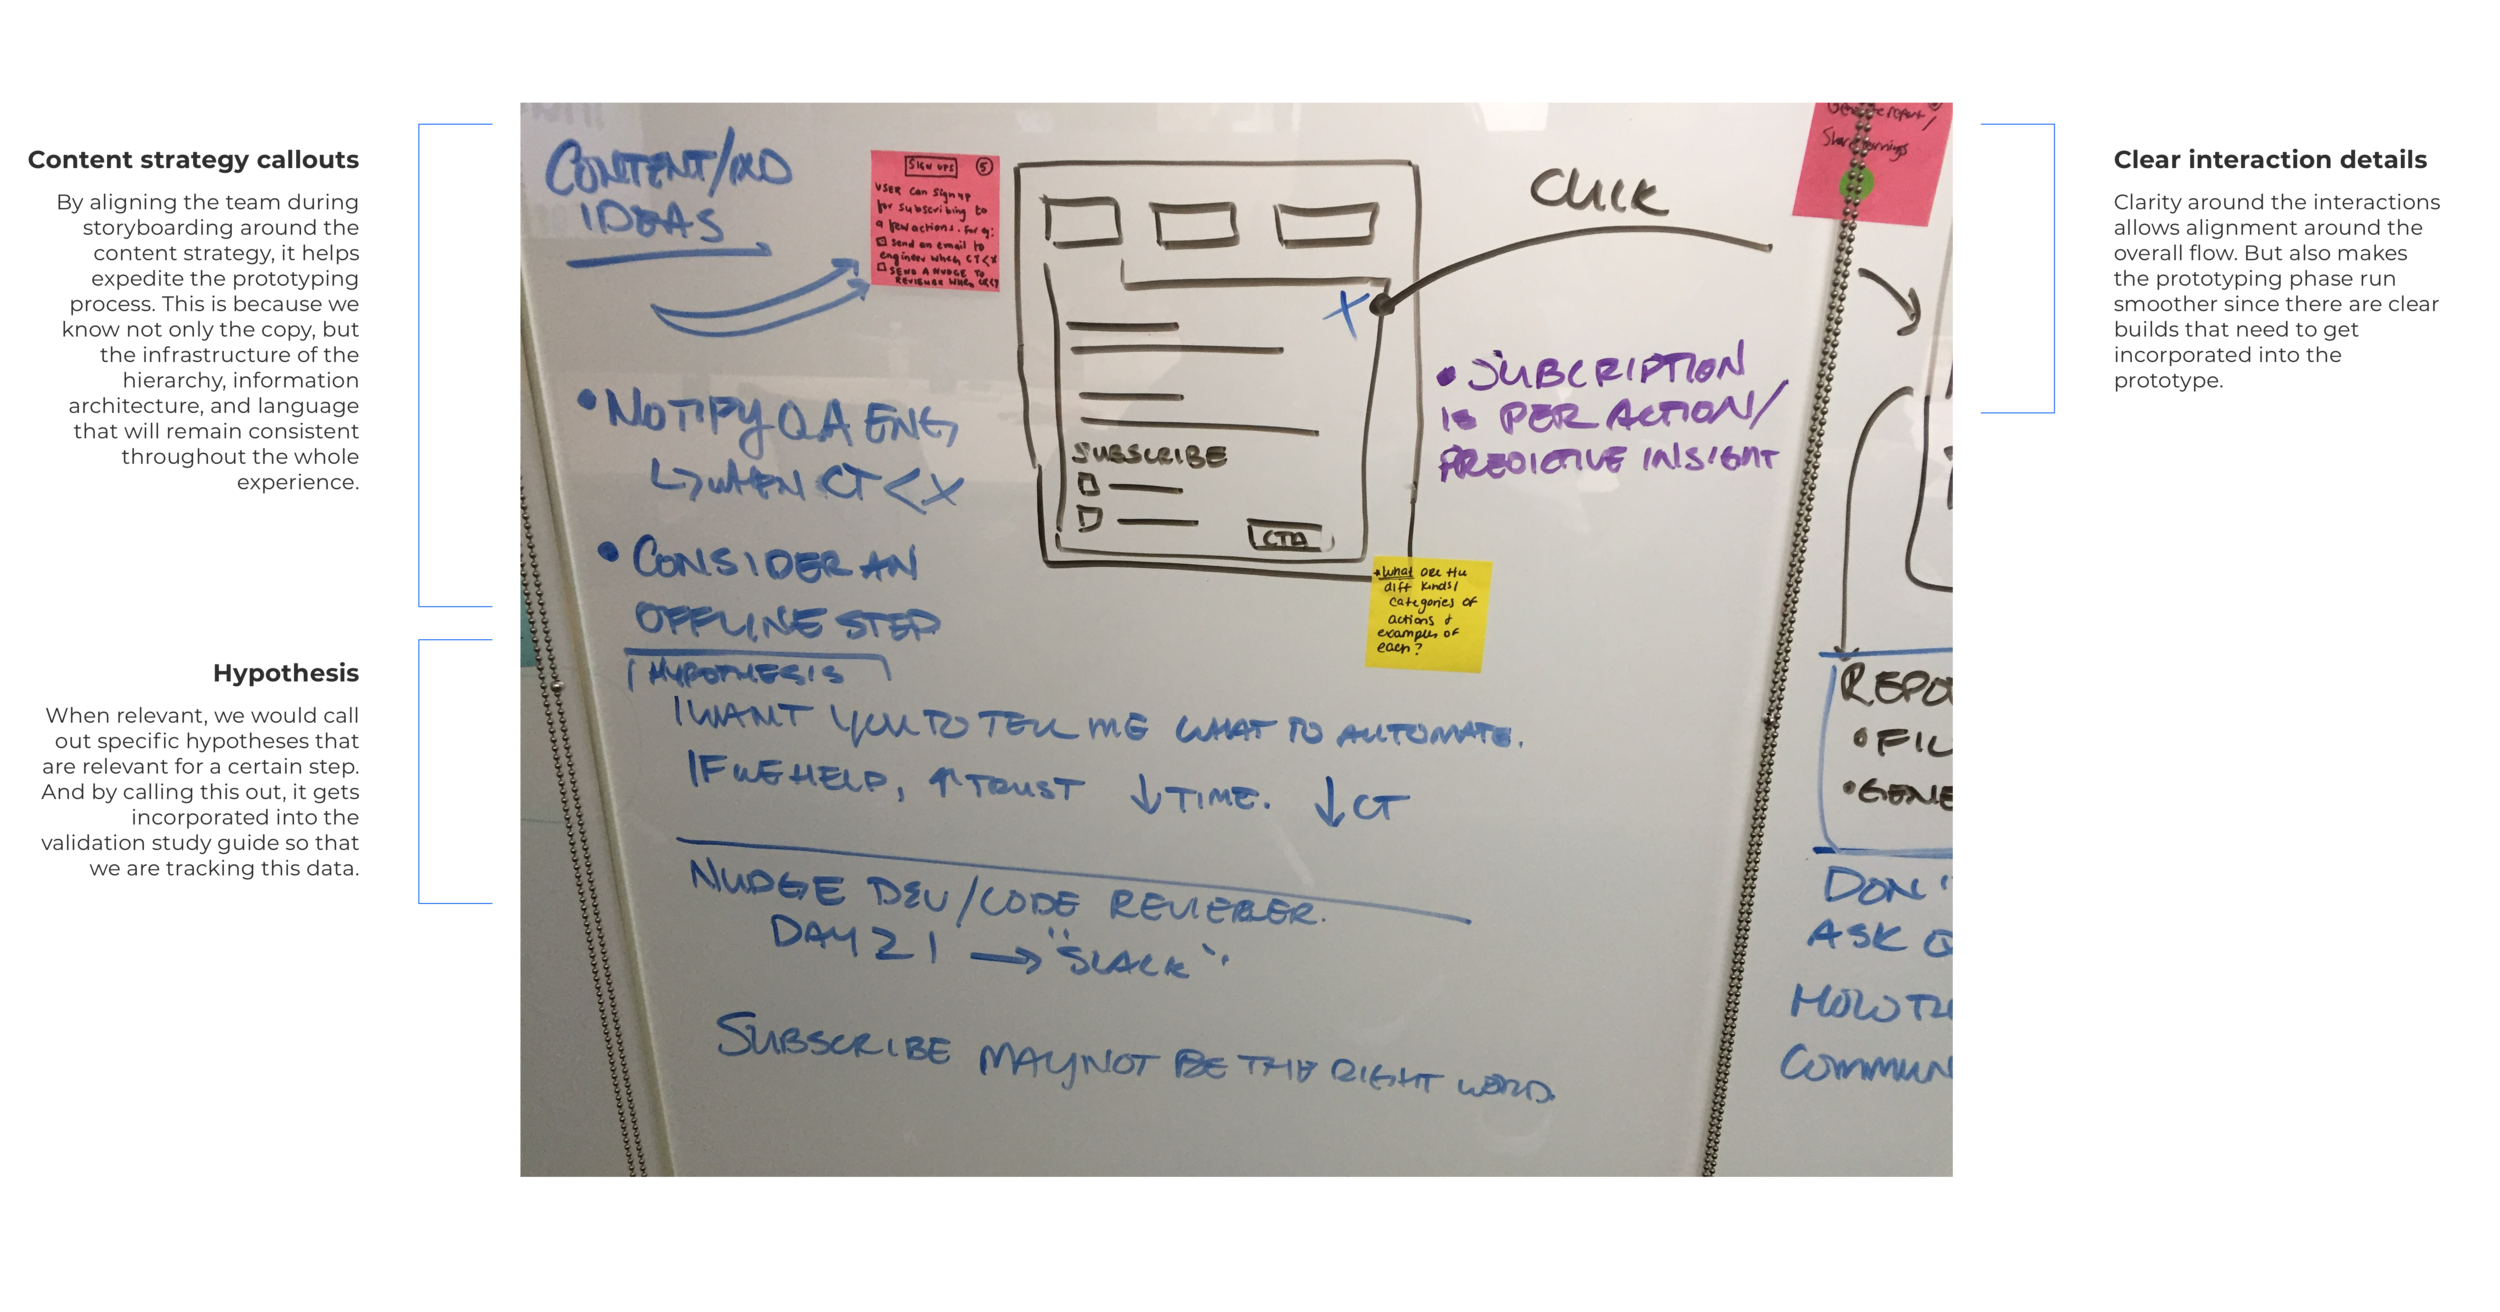 We don't leave the room without annotating key elements of the storyboard to help allow prototyping go smoothly.